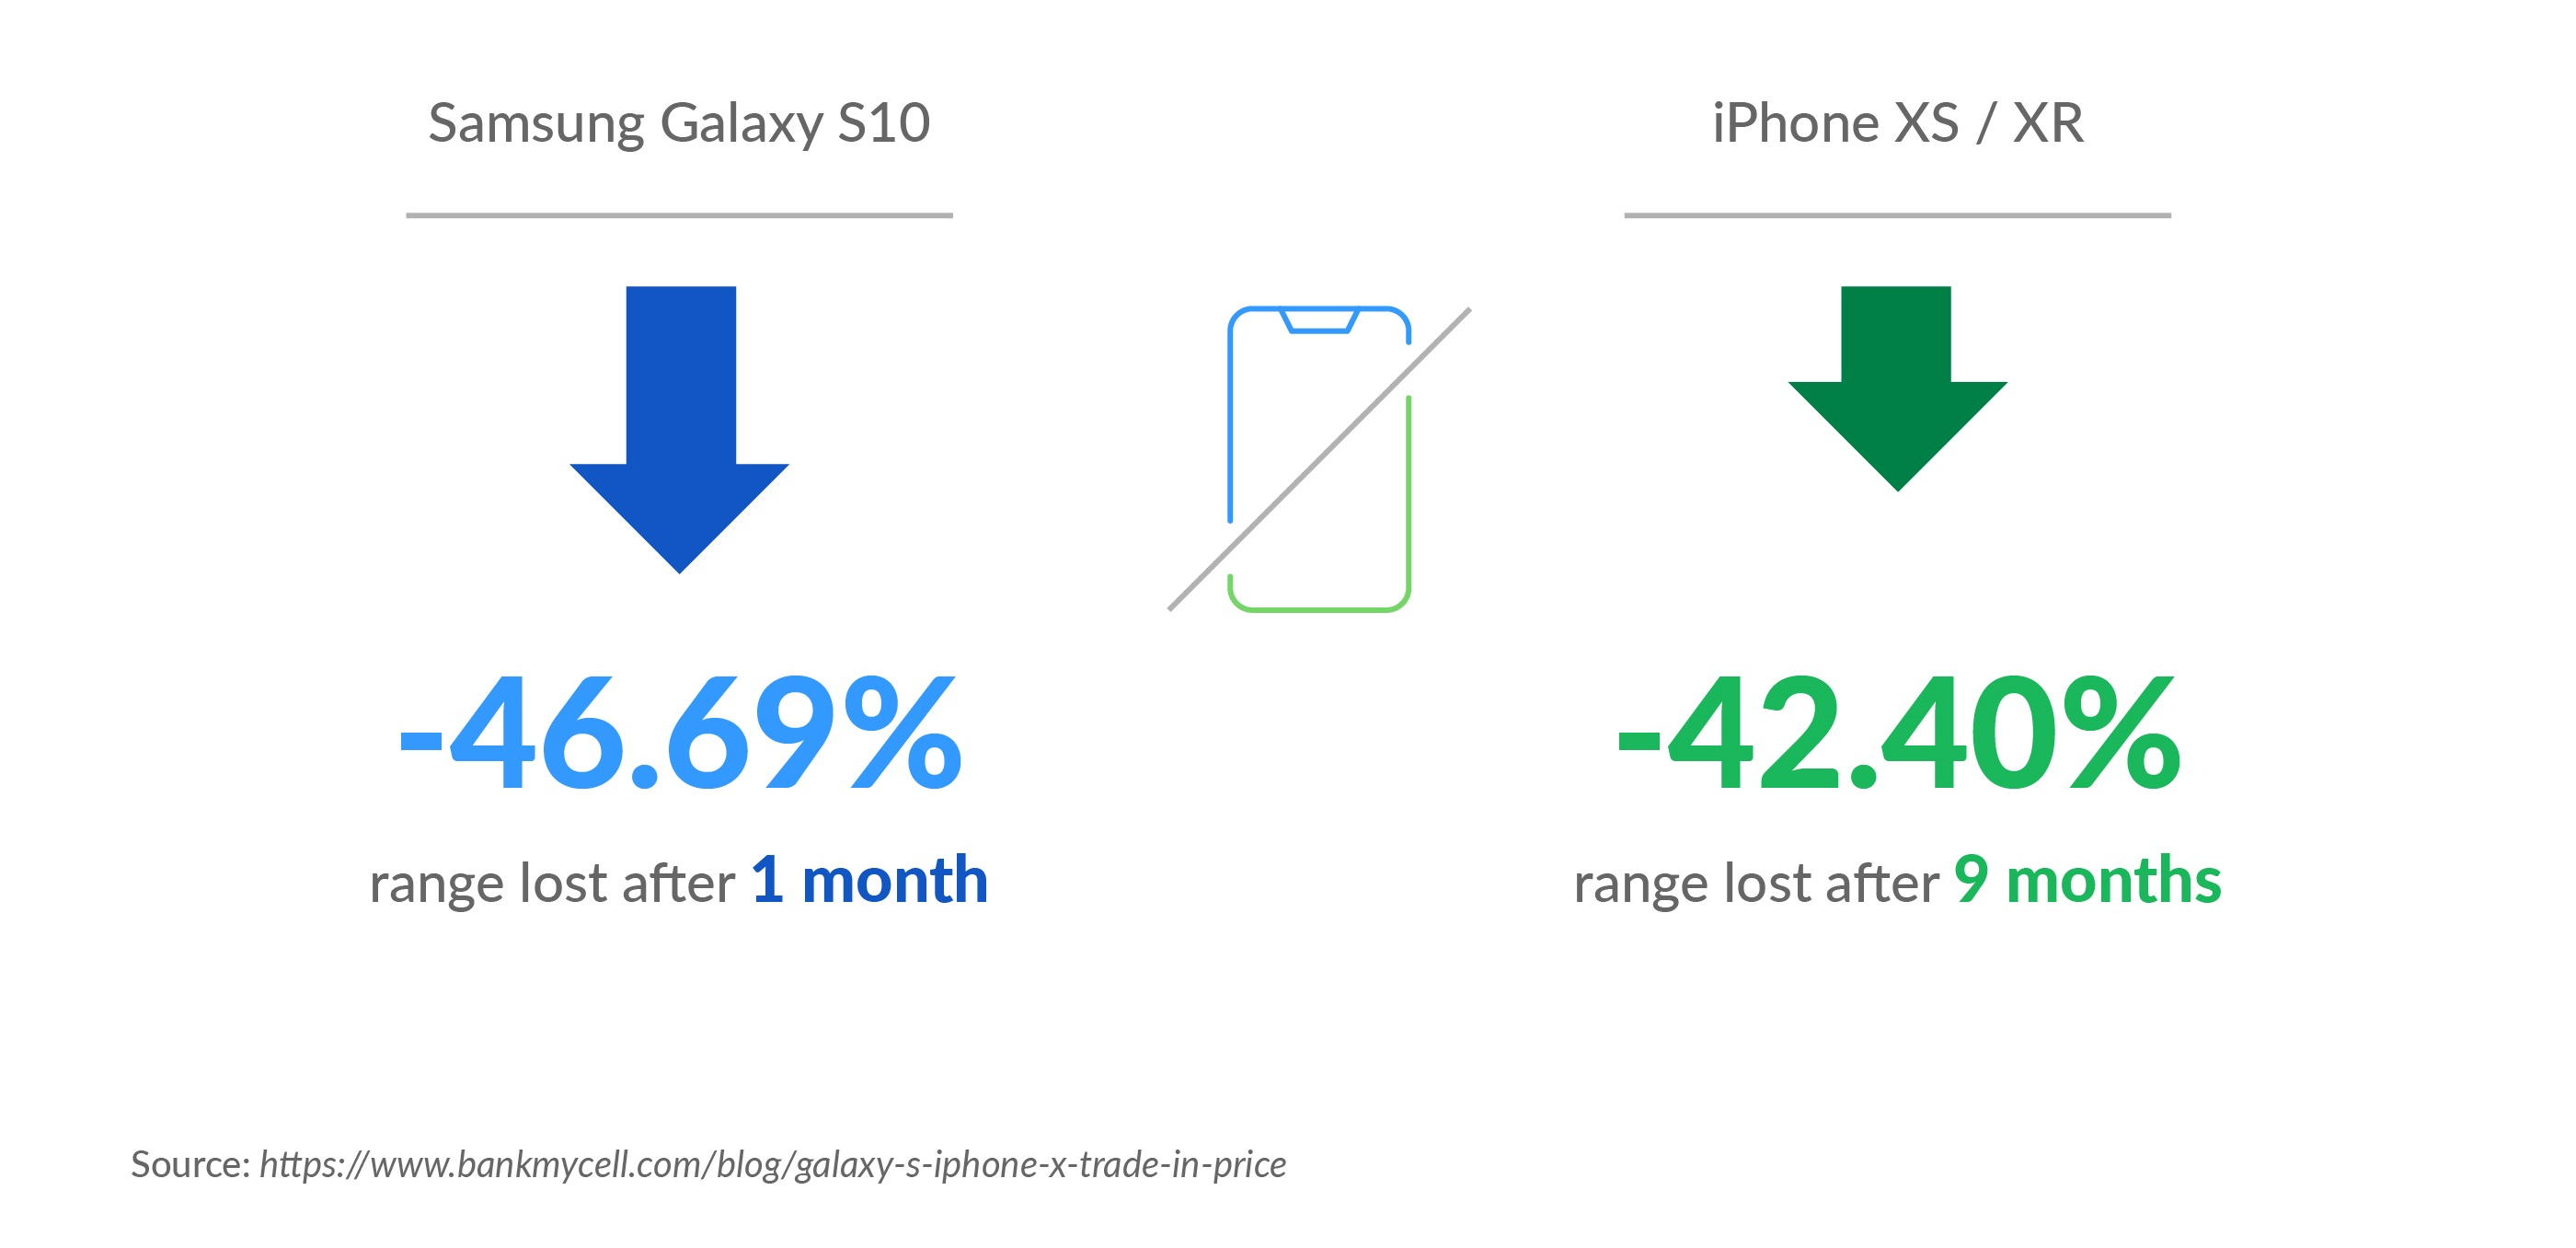 Depreciating Values of Mobile Devices